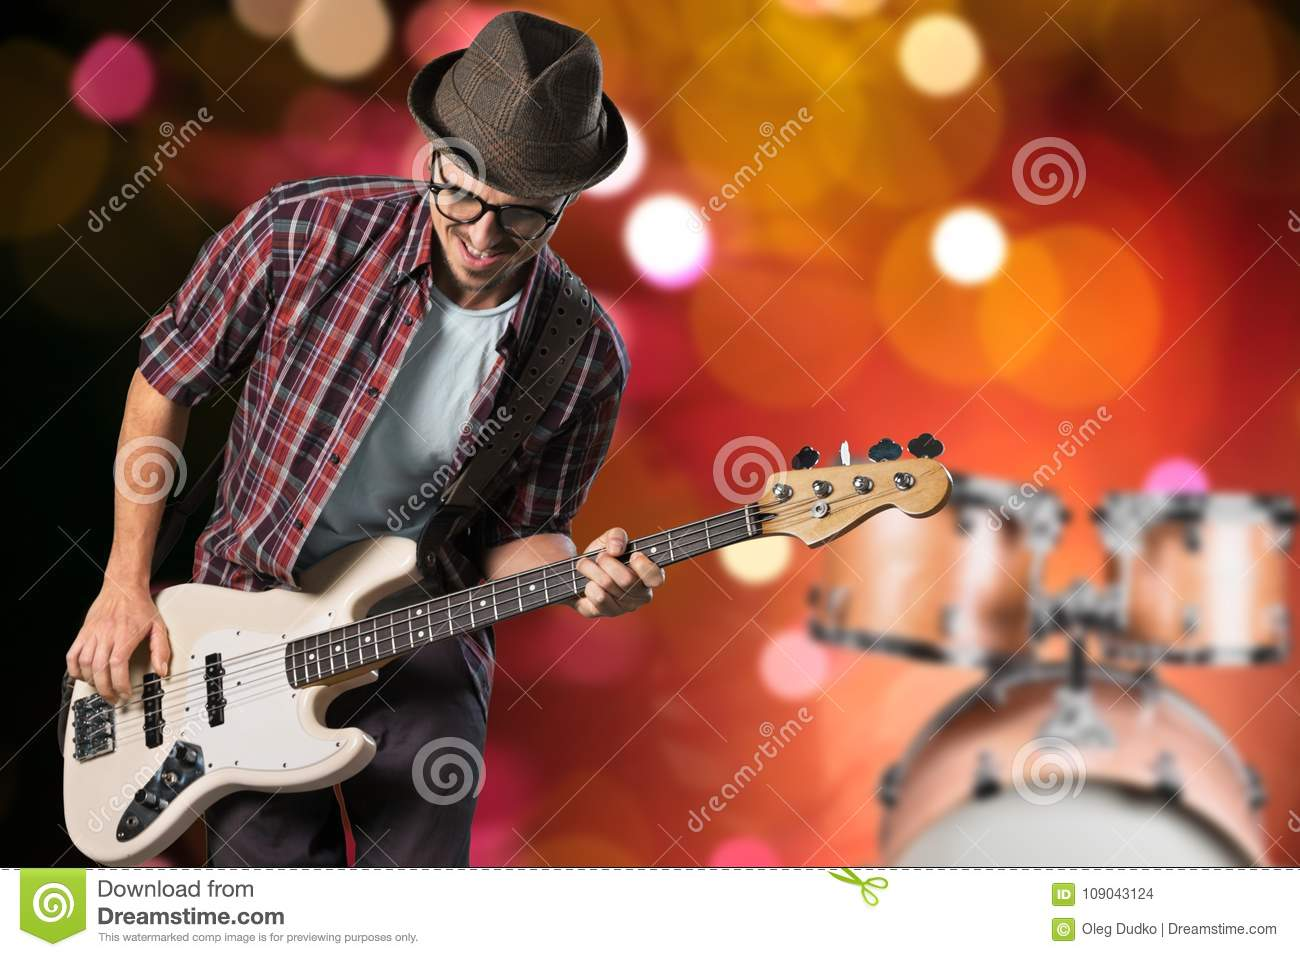 Male Guitarist playing music on blurred background